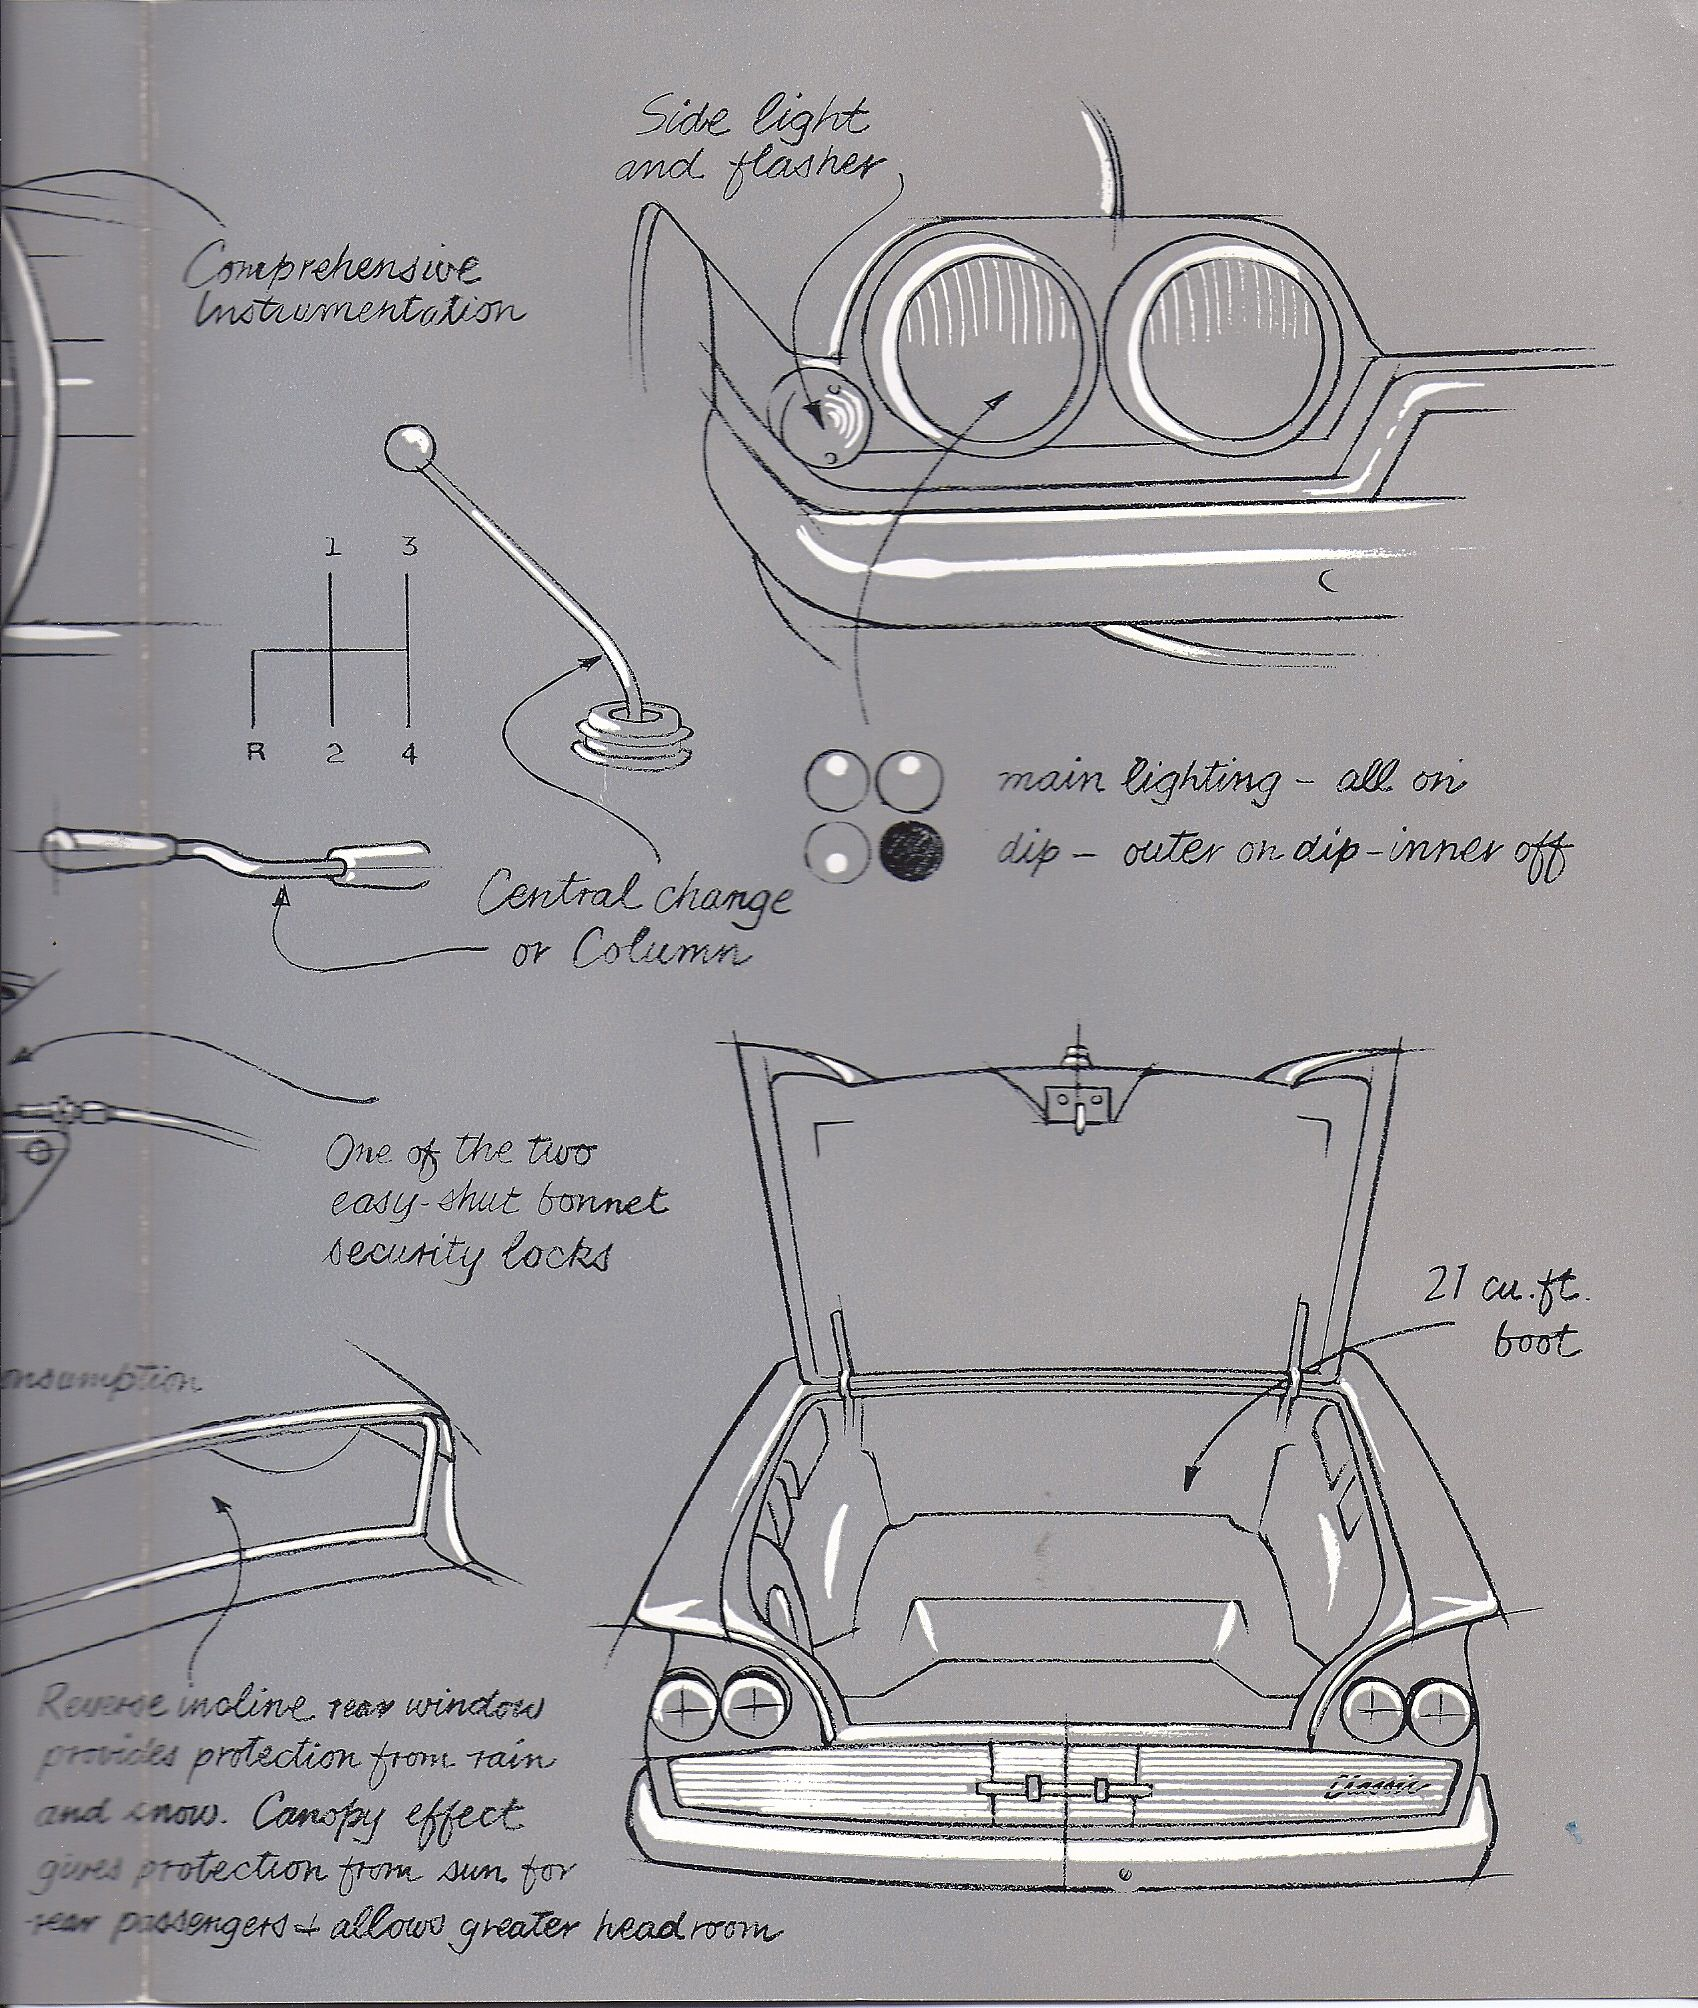 Pin by Ian Barry on Cars Ford Consul Classic Classic